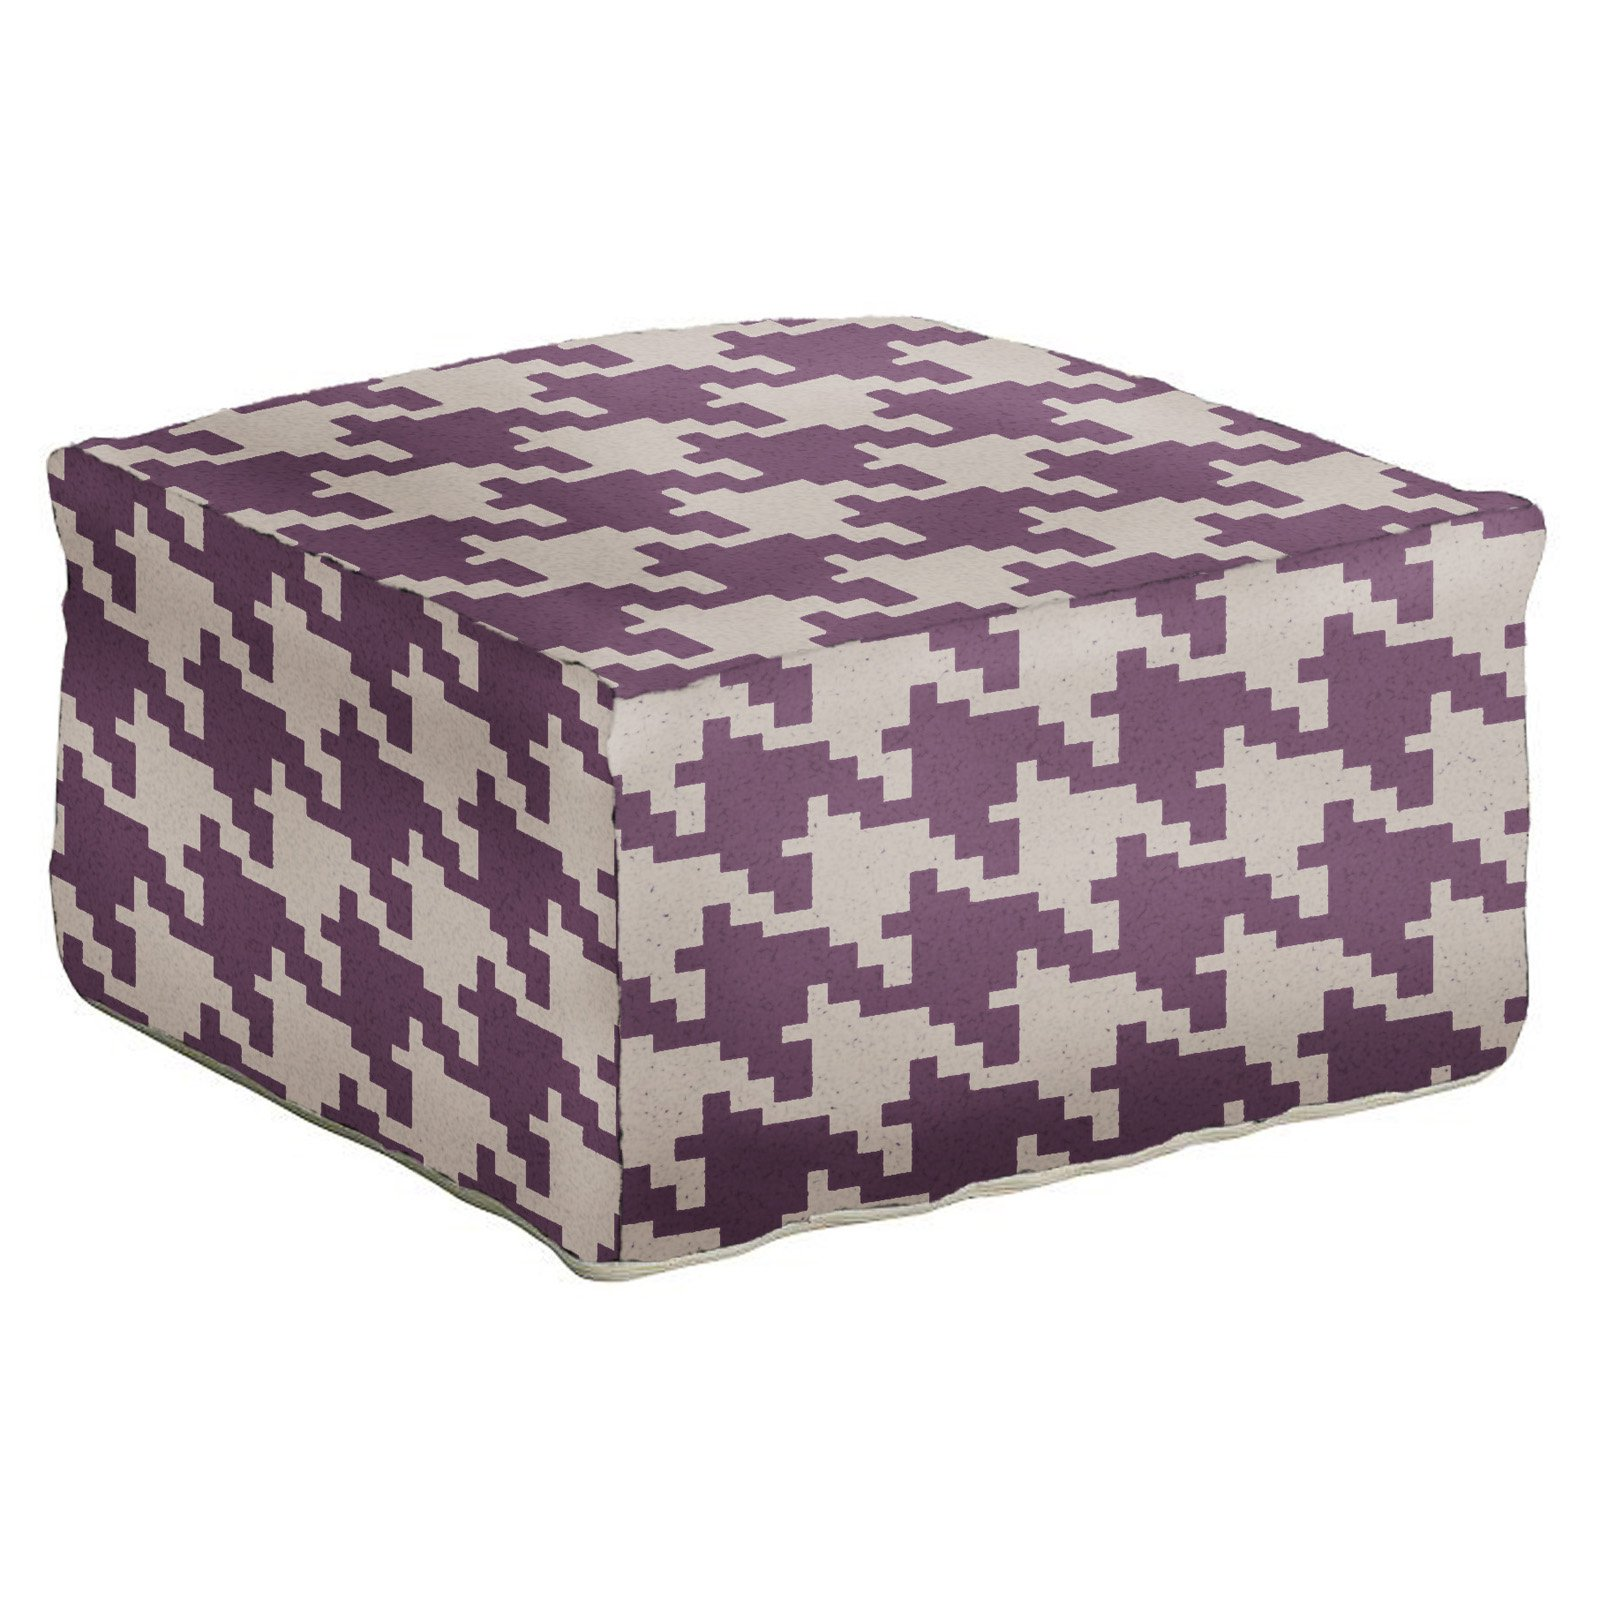 Surya 24 in. Houndstooth Square Wool Pouf